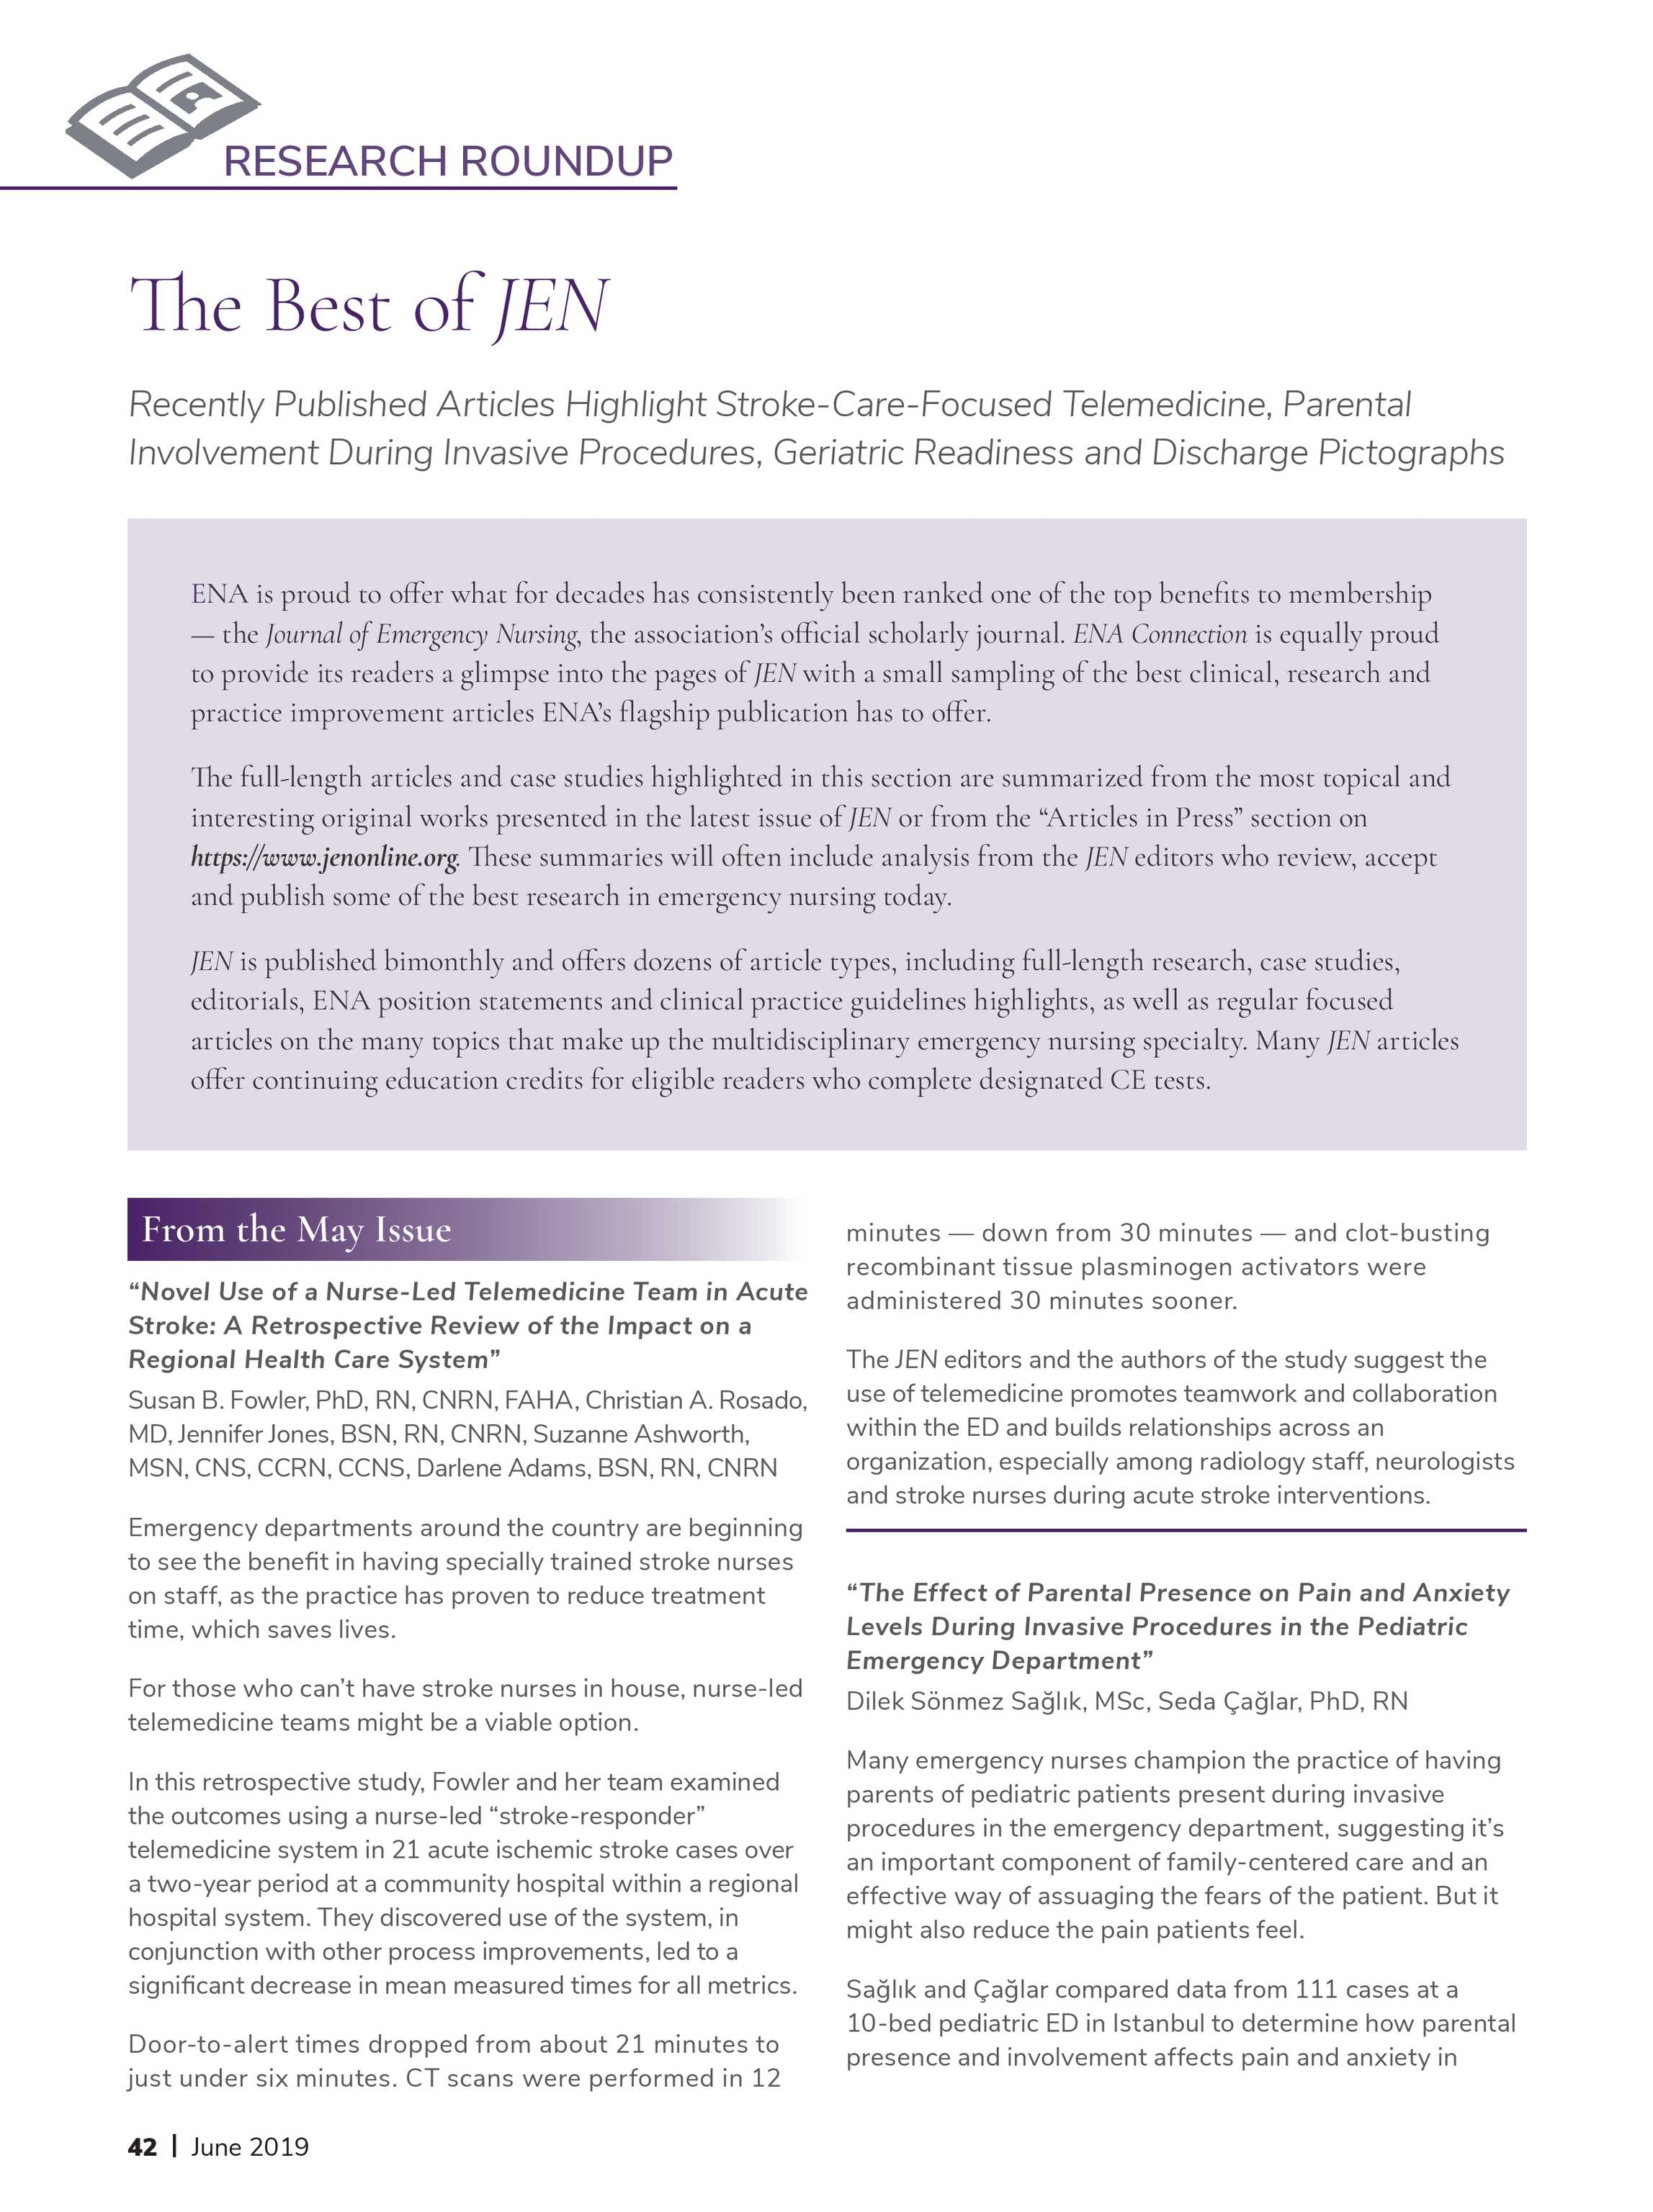 ENA Connection - June 2019 - page 42